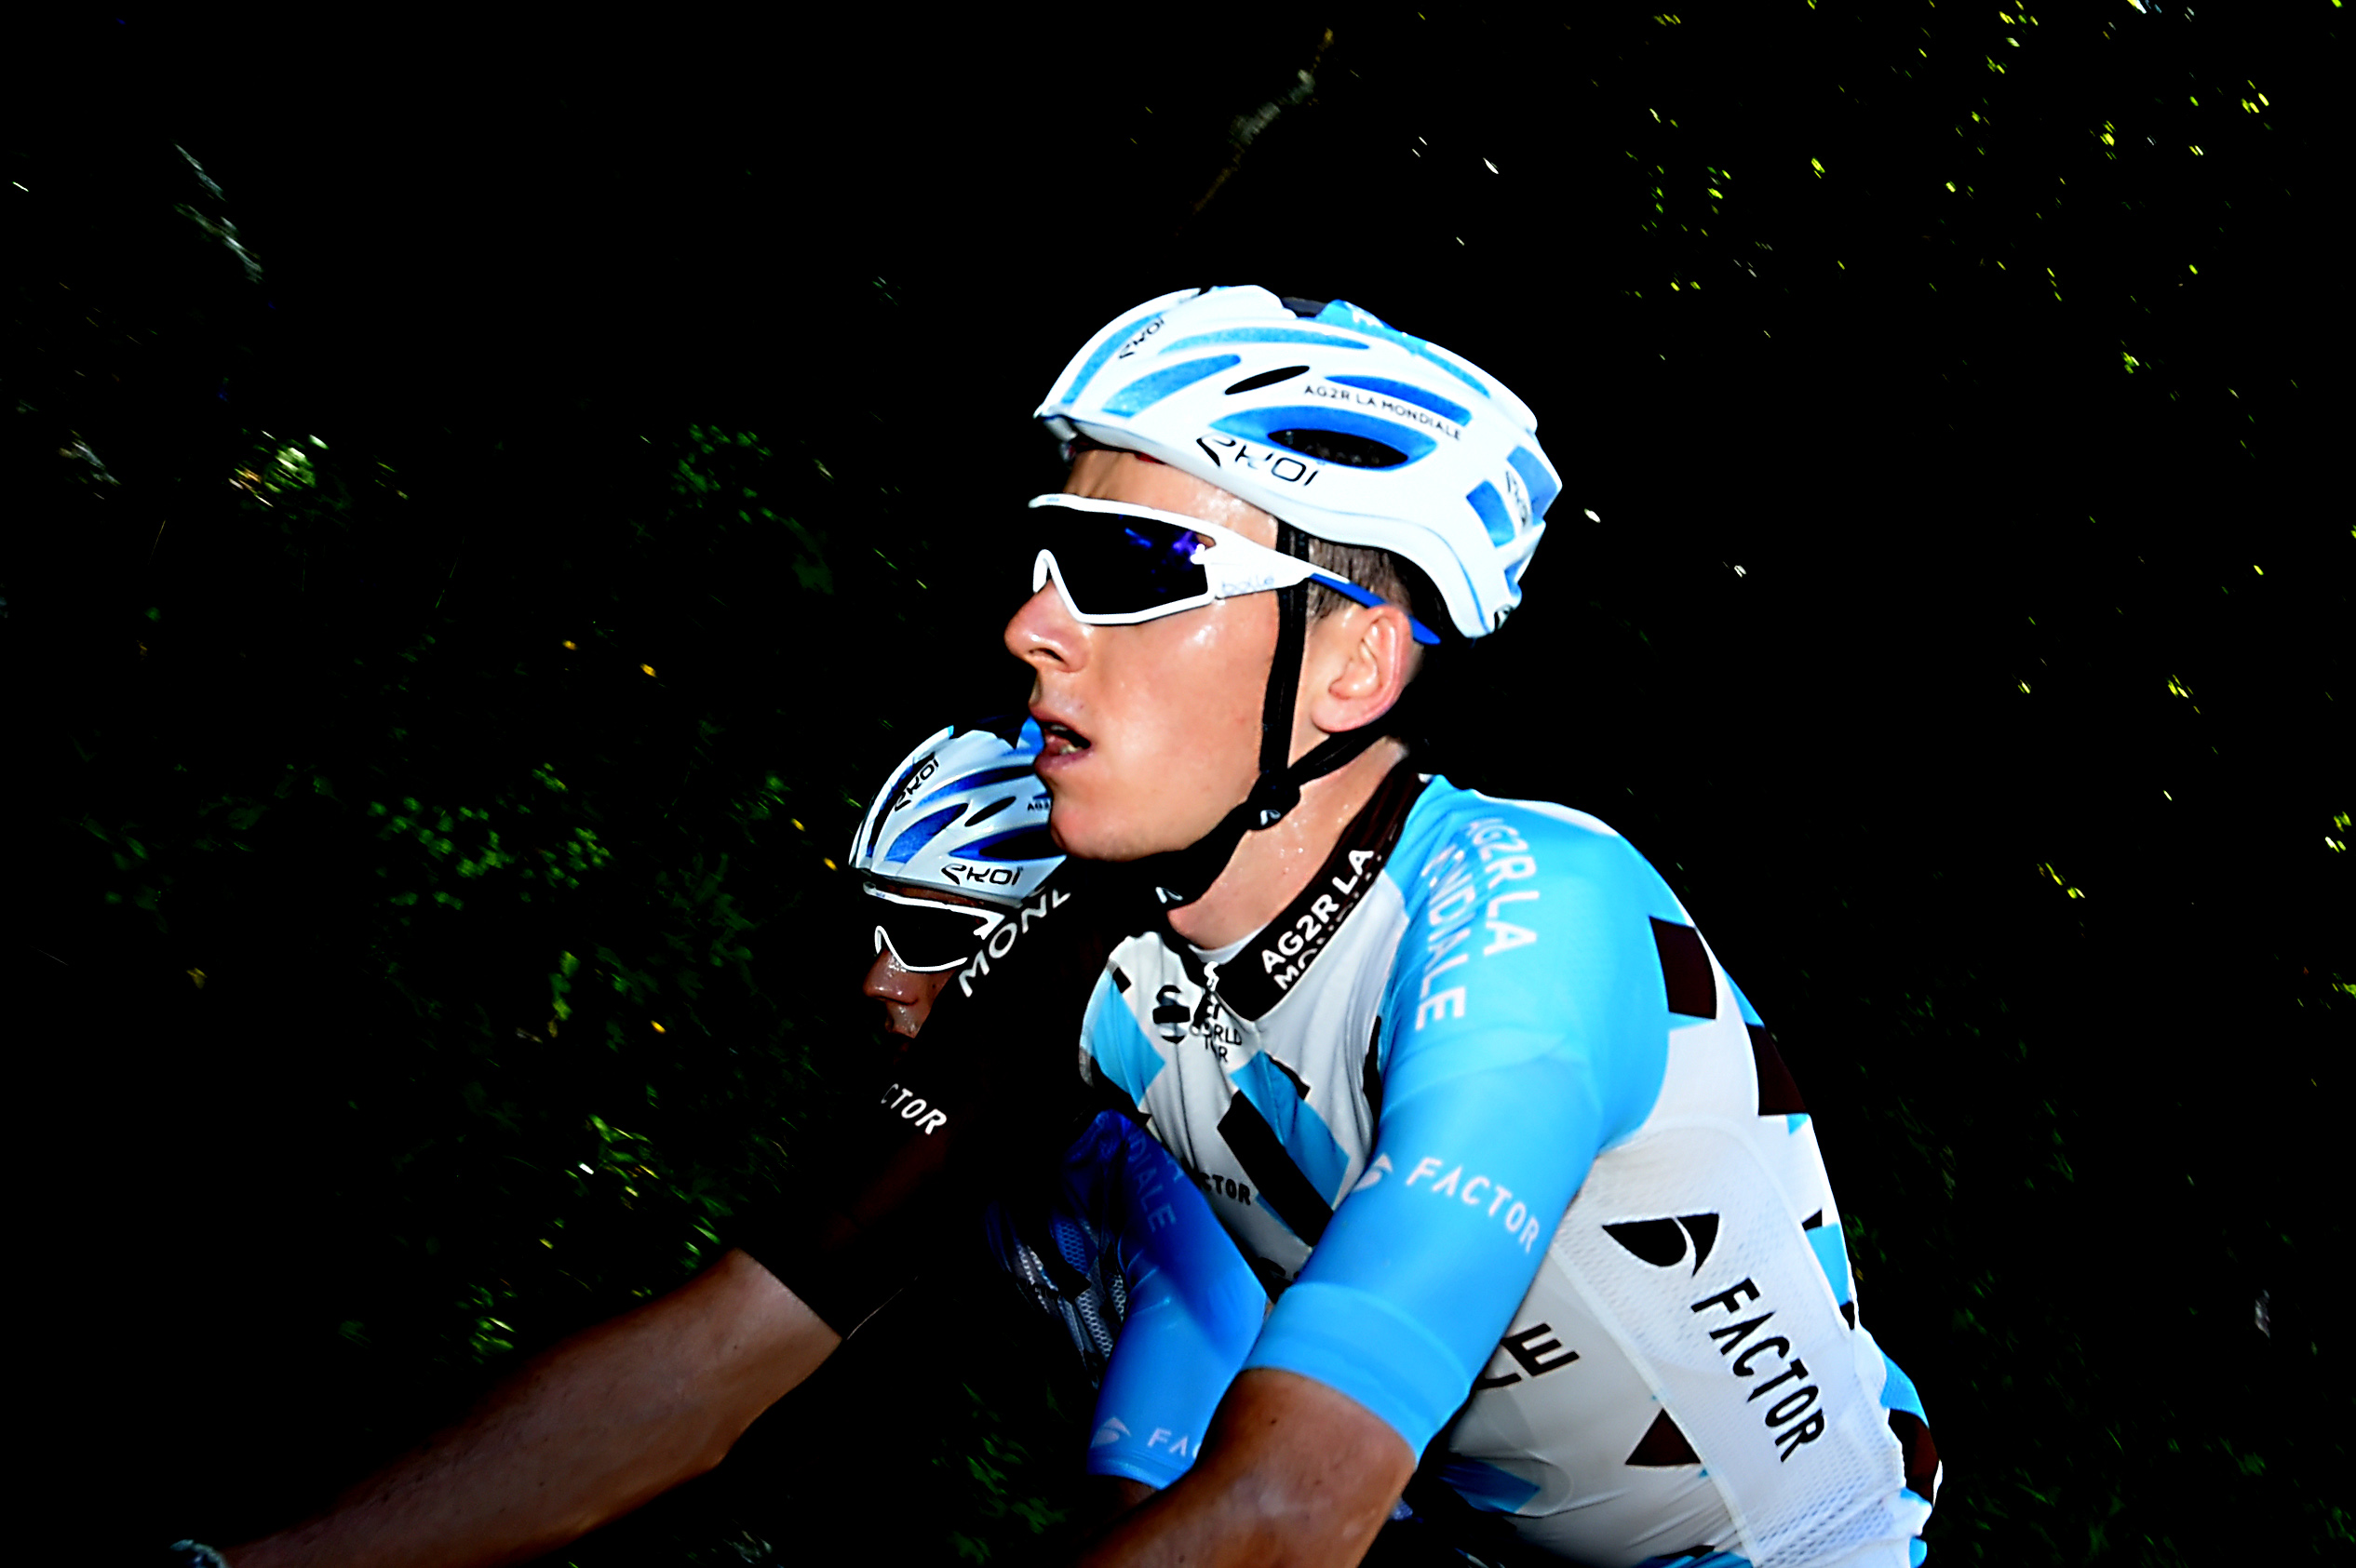 France's Romain Bardet practices on the road of this year's Tour de France 9th stage, on June 2, 2017 near Chambery. / AFP PHOTO / JEAN-PIERRE CLATOT (Photo credit should read JEAN-PIERRE CLATOT/AFP/Getty Images)